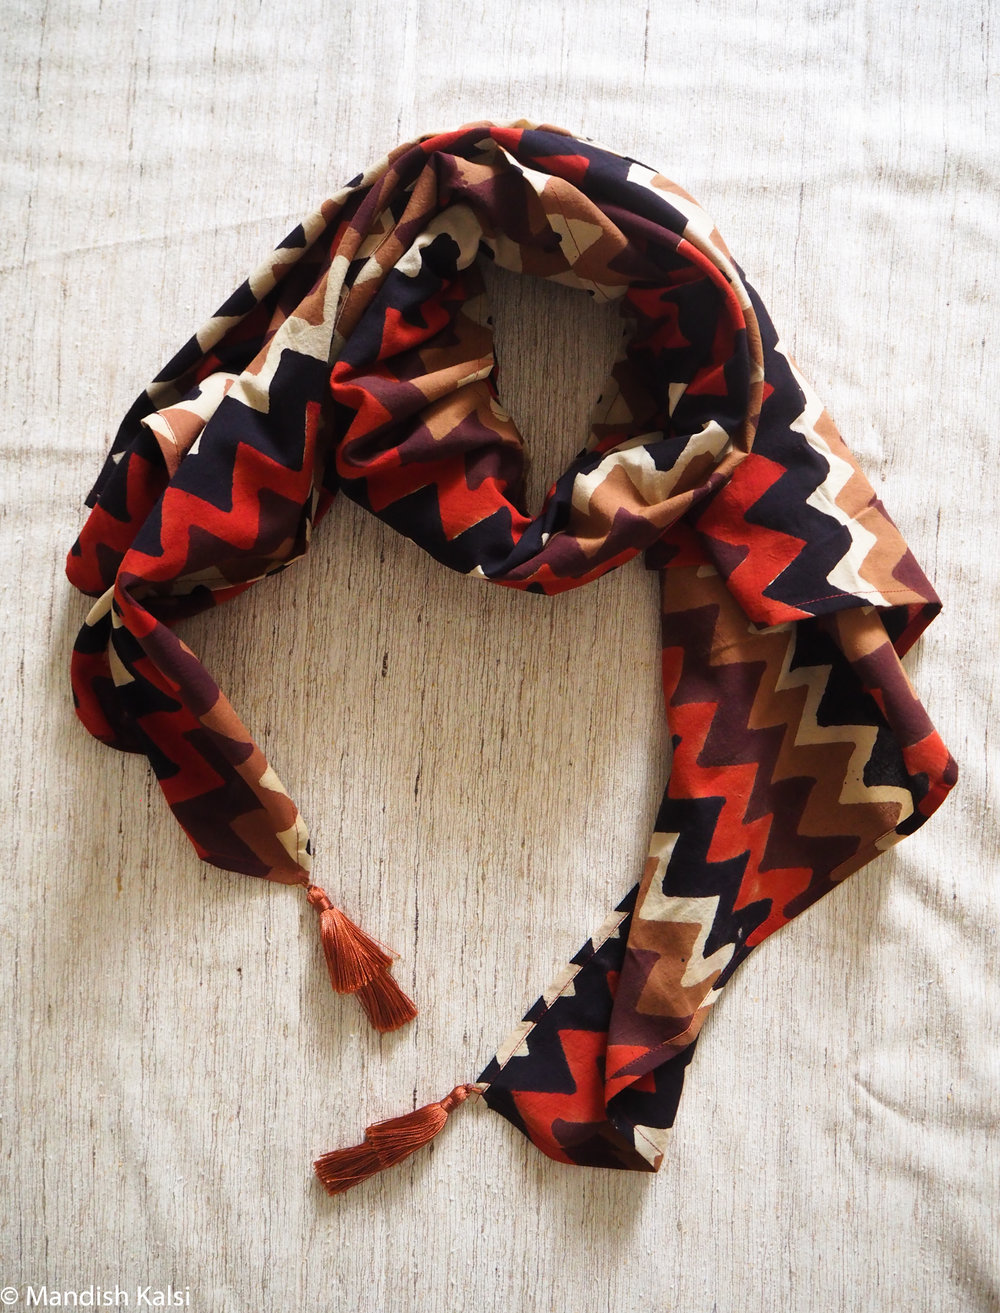 Multi-coloured chevron print - Large scarf with tiered tassels